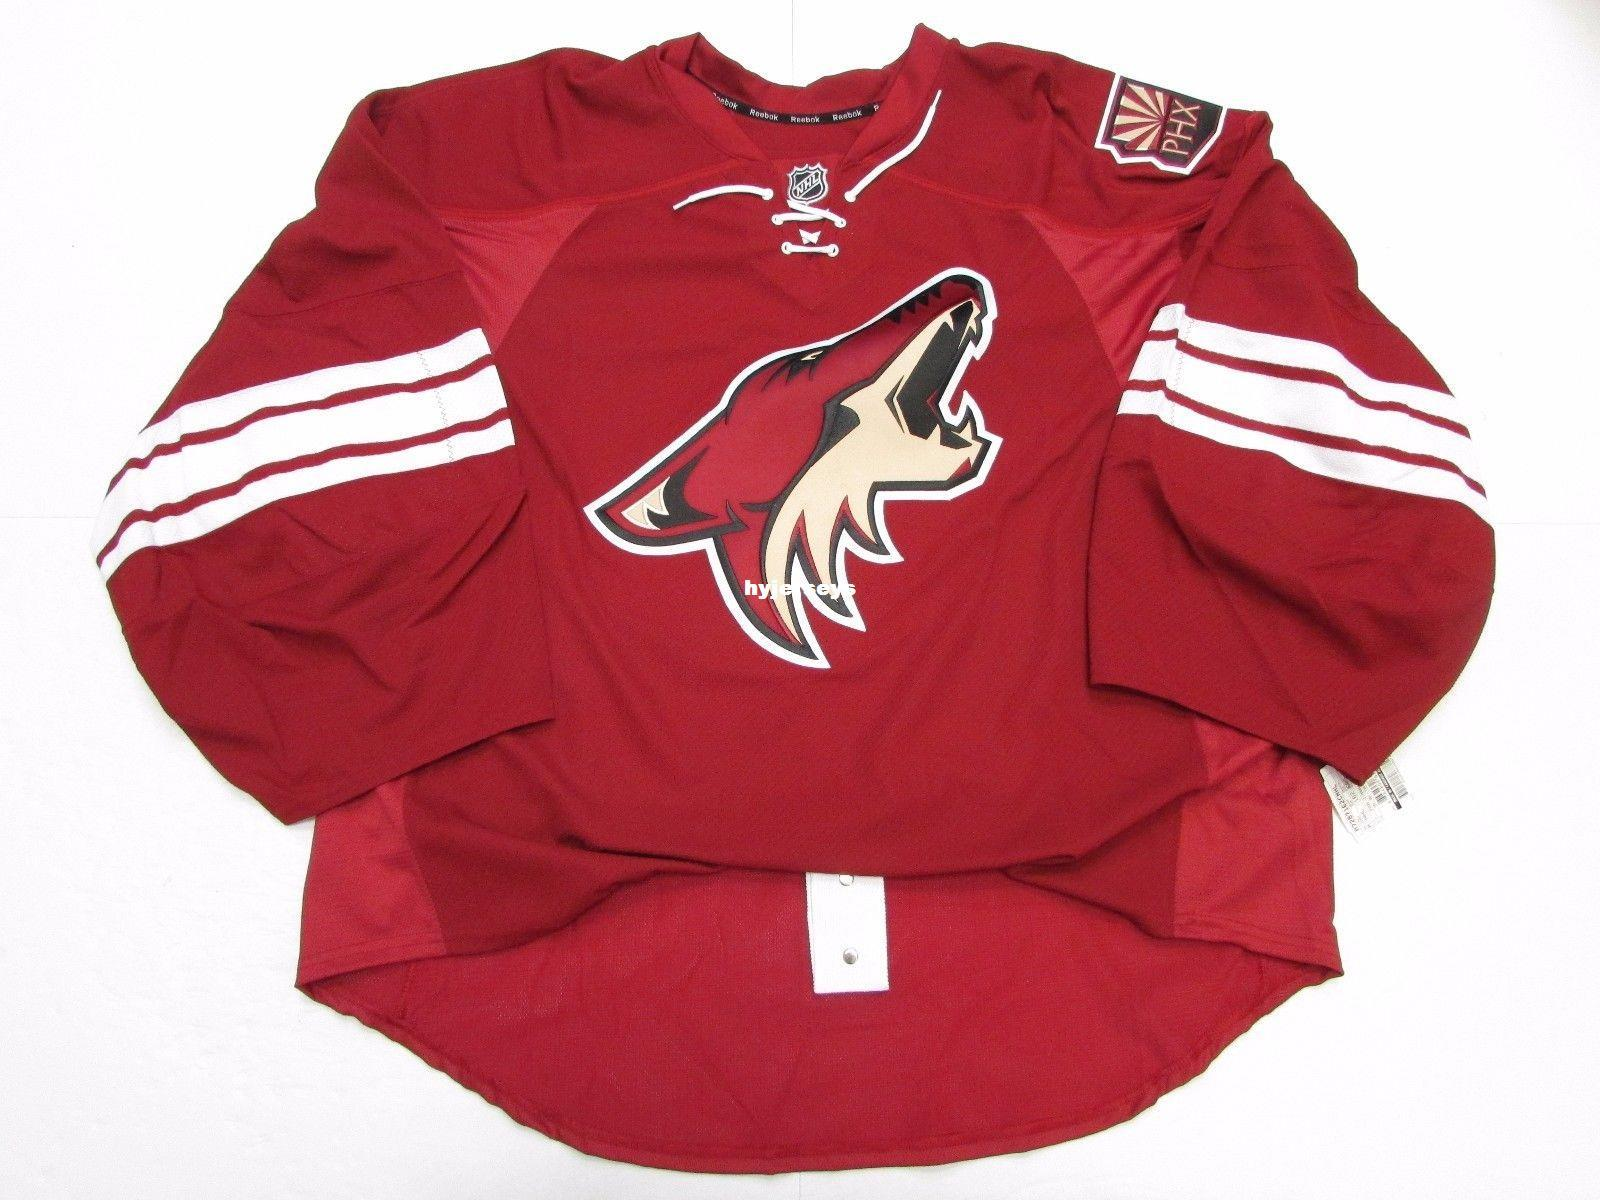 Cheap Custom PHOENIX COYOTES AUTHENTIC HOME EDGE JERSEY GOALIE CUT Mens  Stitched Personalized Hockey Jerseys Online with  67.46 Piece on  Hyjerseys s Store ... 7d28e7701